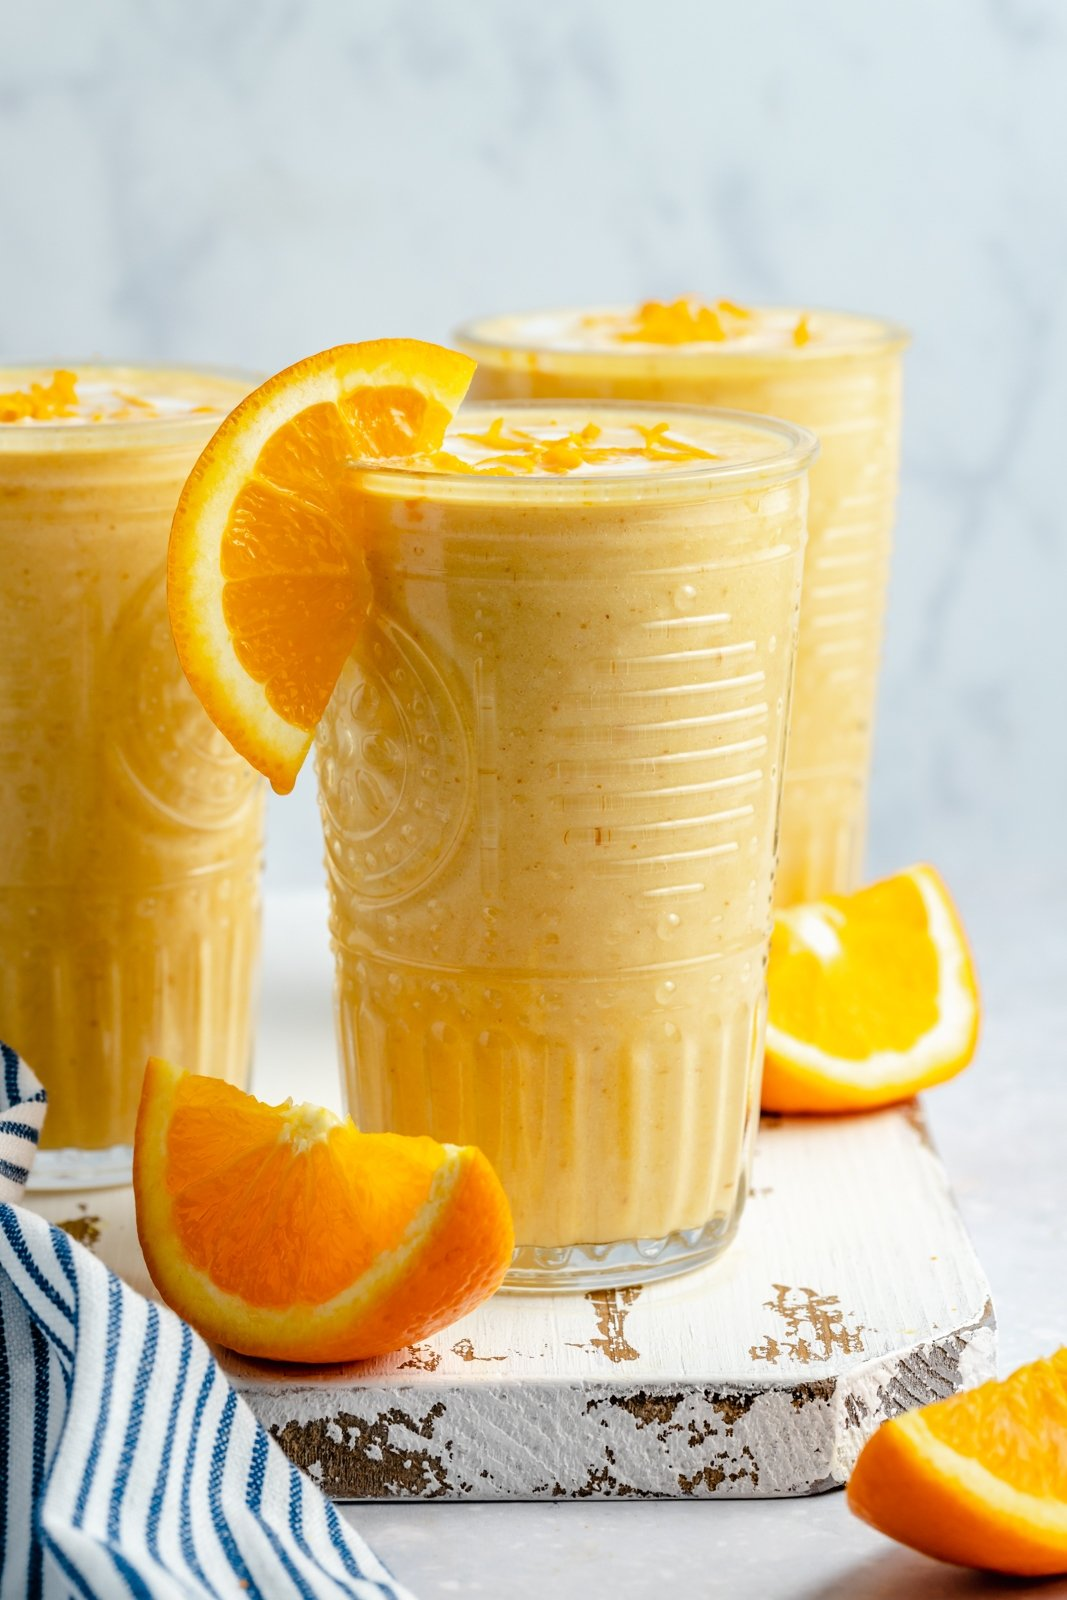 healthy orange smoothie in a glass with an orange wedge